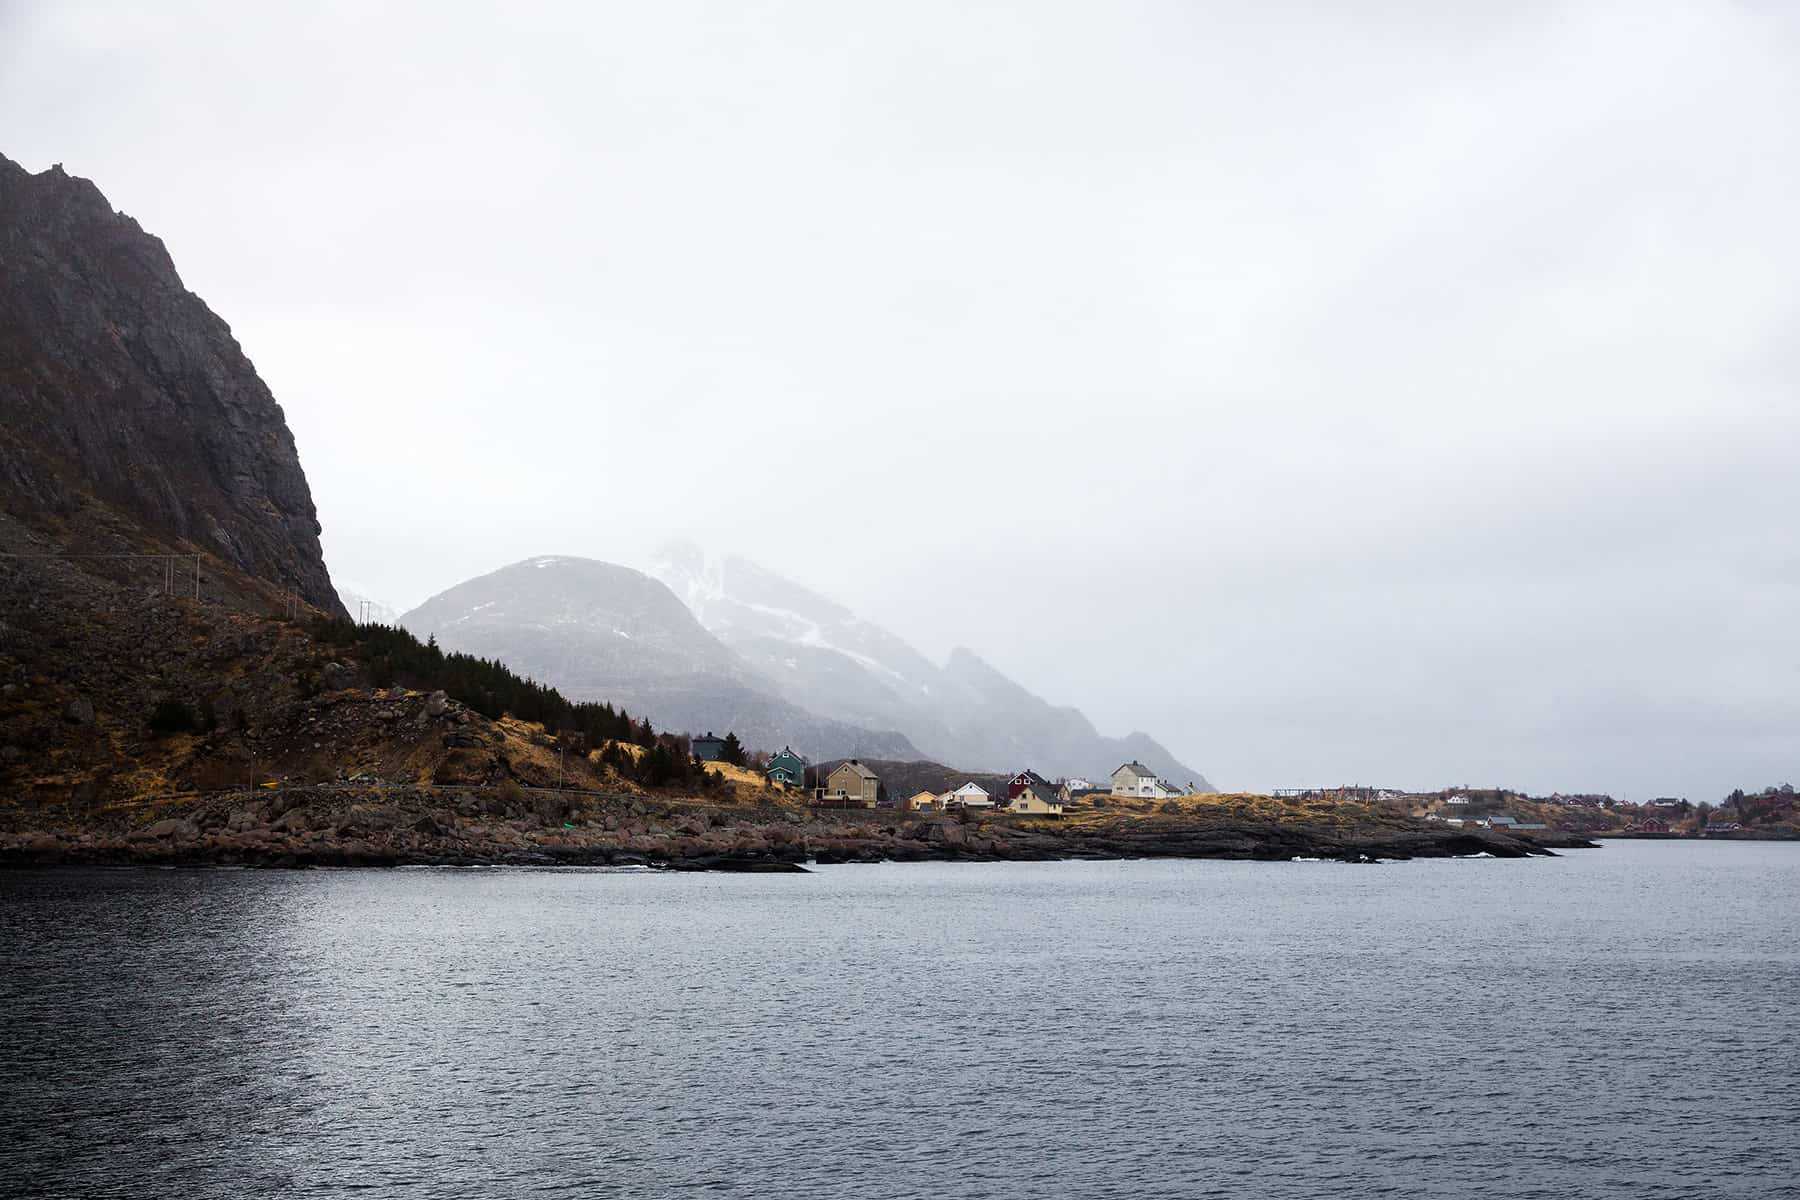 Typical for Lofoten: mountains, water and coloured houses.